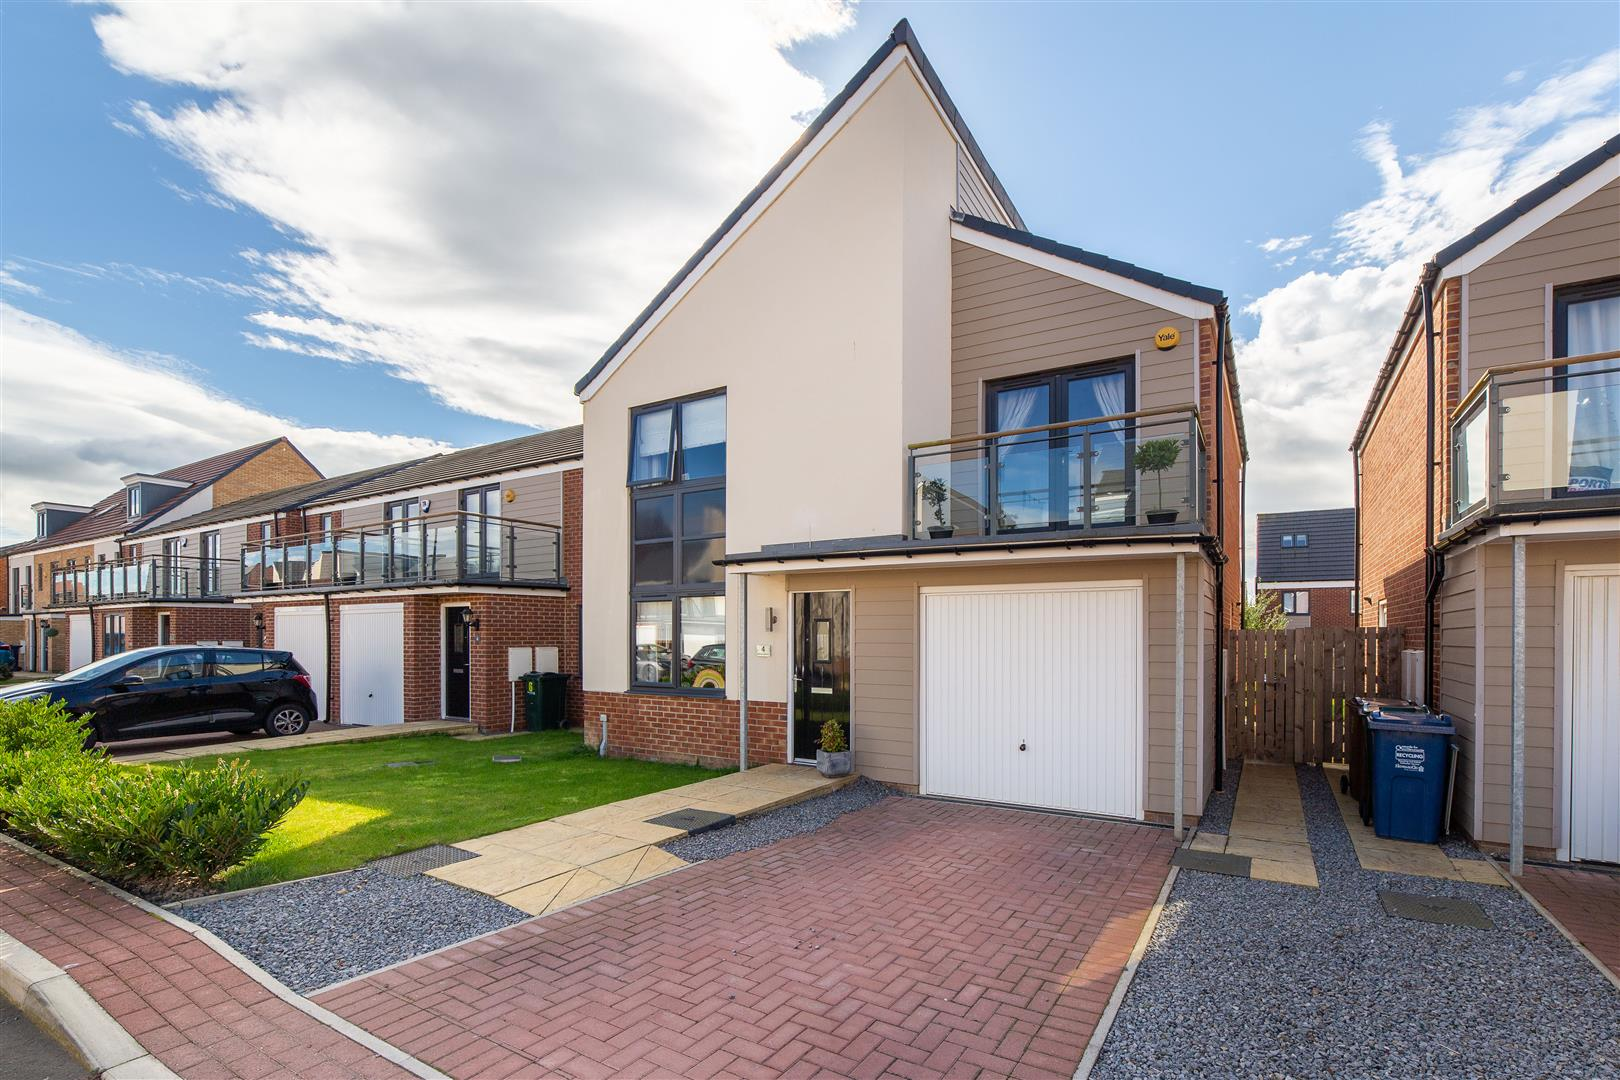 4 bed detached house for sale in Newcastle Upon Tyne, NE13 9DN - Property Image 1